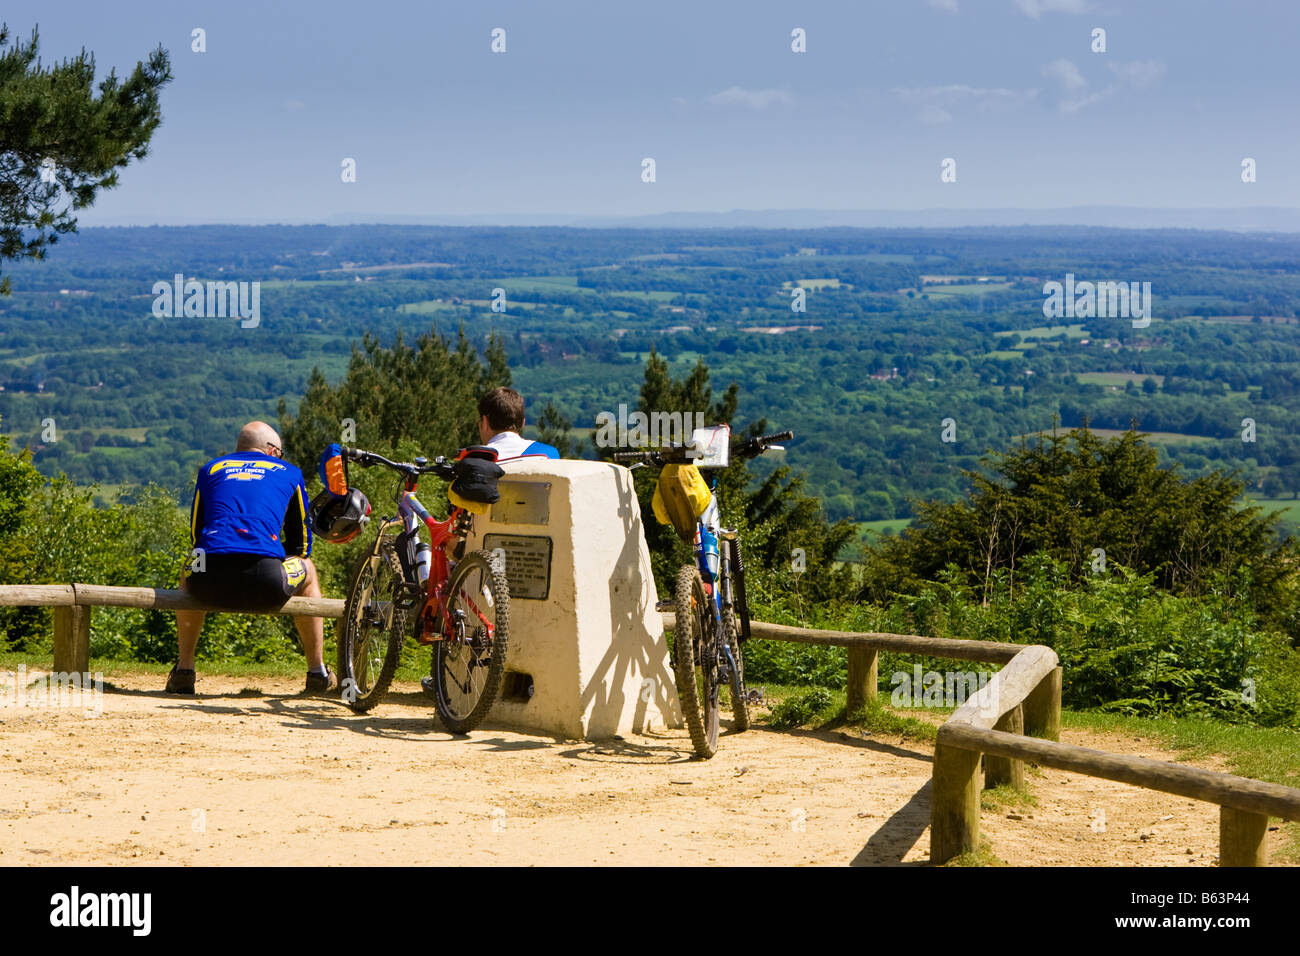 Two cyclists enjoying the views over the Weald and South Downs countryside at the top of Leith Hill, Surrey, England - Stock Image